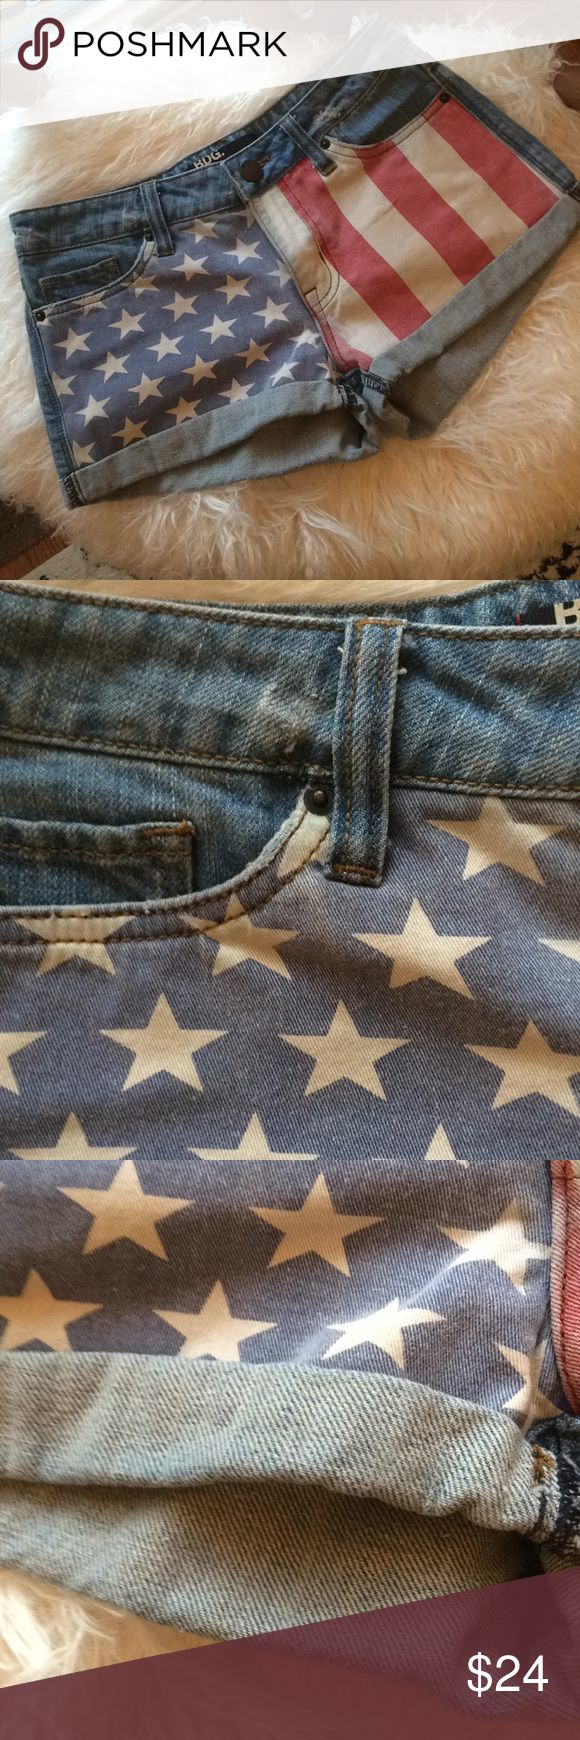 BDG  Urban Outfitters, distressed U.S. flag shorts BDG distressed, vintage look American flag jean shorts. Distressing at the waist, pockets and leather at the back waist band (see photos). The dye from leather may have bled during washing, but it just adds to the vintage look. Perfect for festival season!  - Wonderful pre-loved condition. - Made in China. - 100% cotton. Machine wash. BDG Shorts